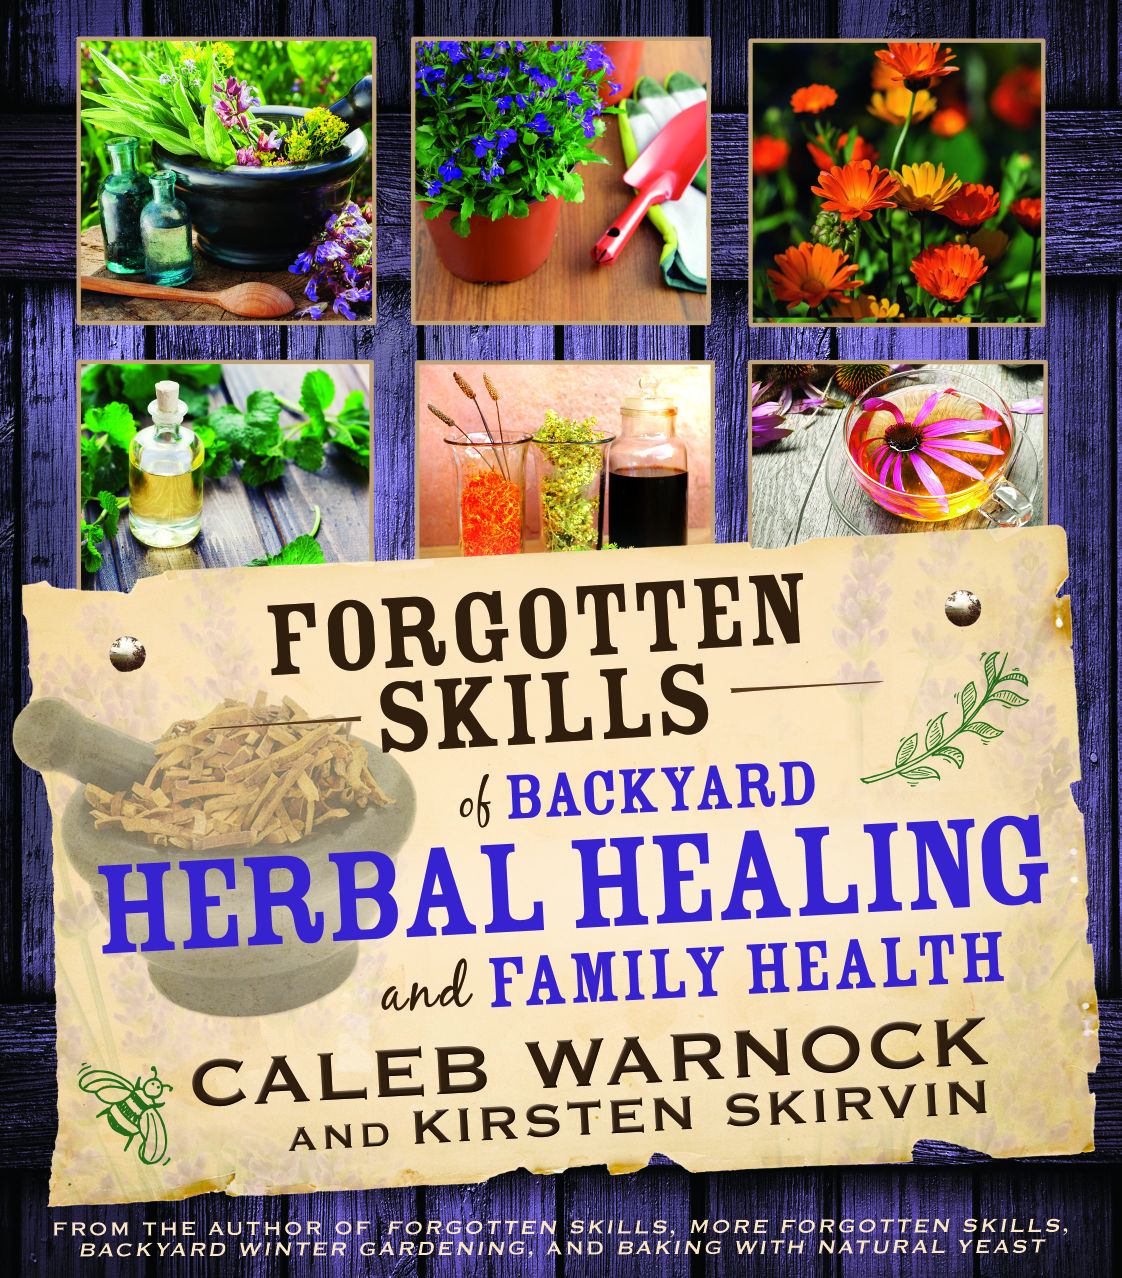 Book review: 'Forgotten Skills of Backyard Herbal Healing and Family Health' is a great intro into herbal world